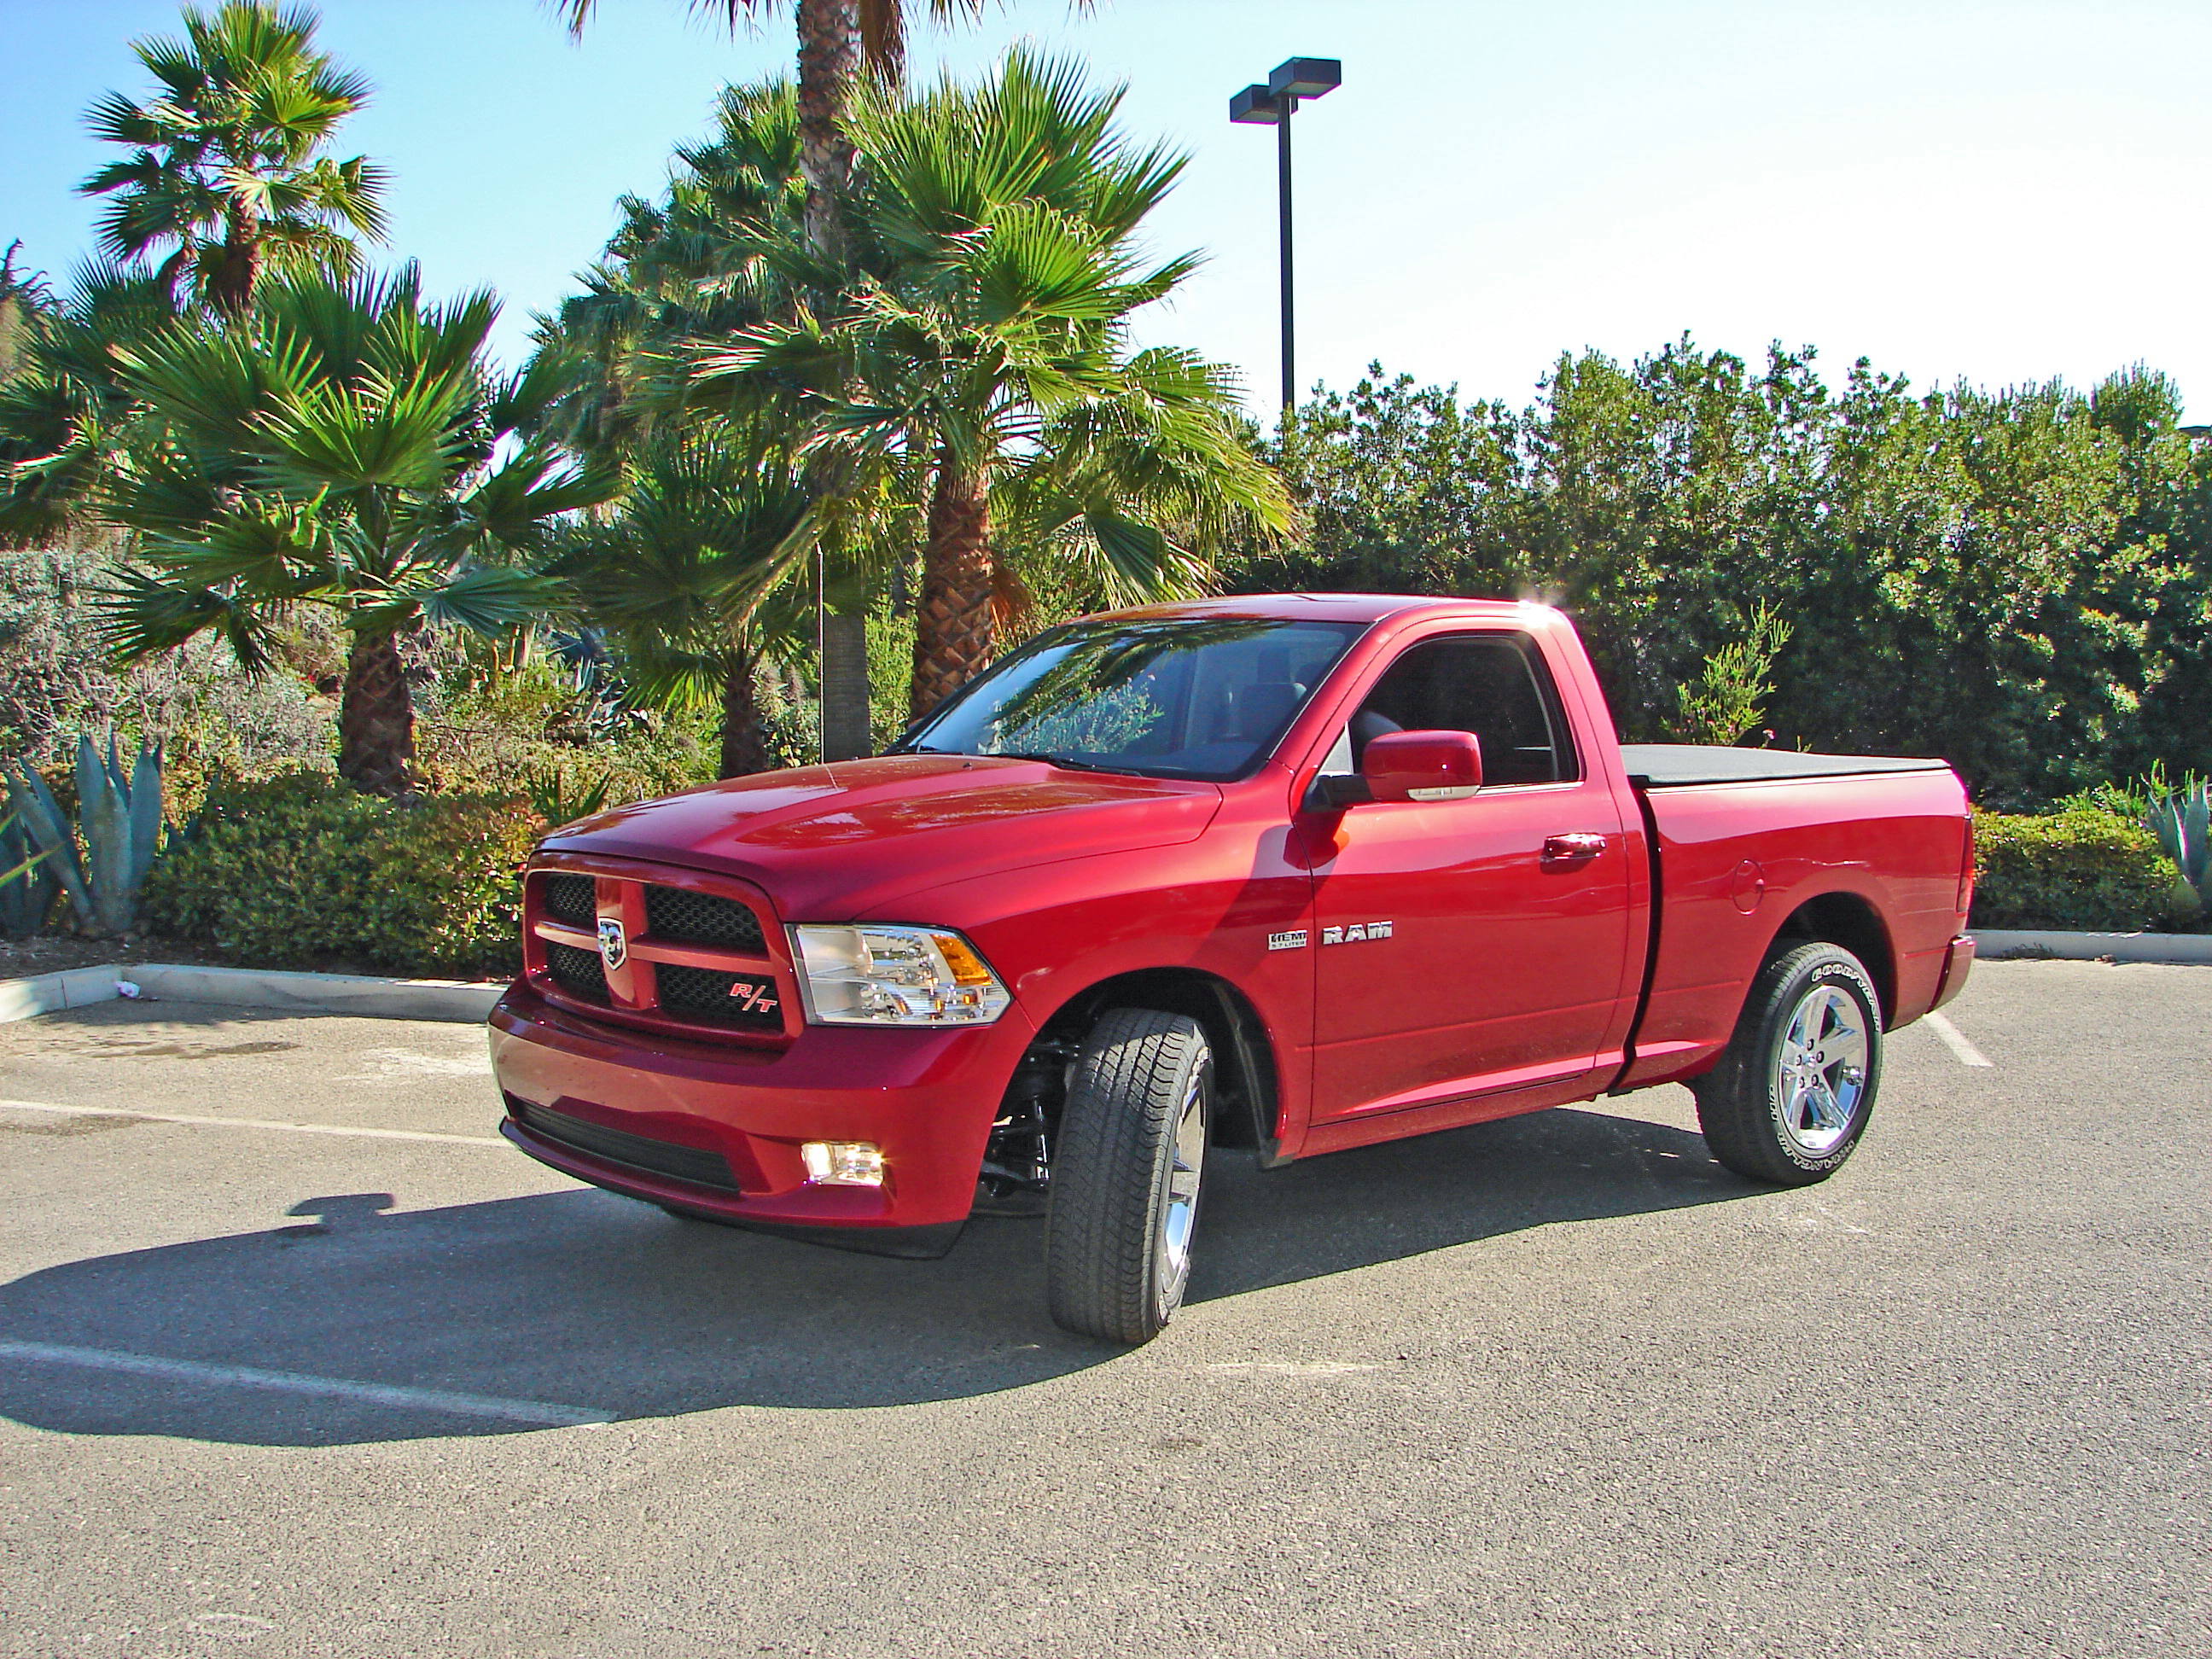 dodge ram 1500 rt photos reviews news specs buy car. Black Bedroom Furniture Sets. Home Design Ideas